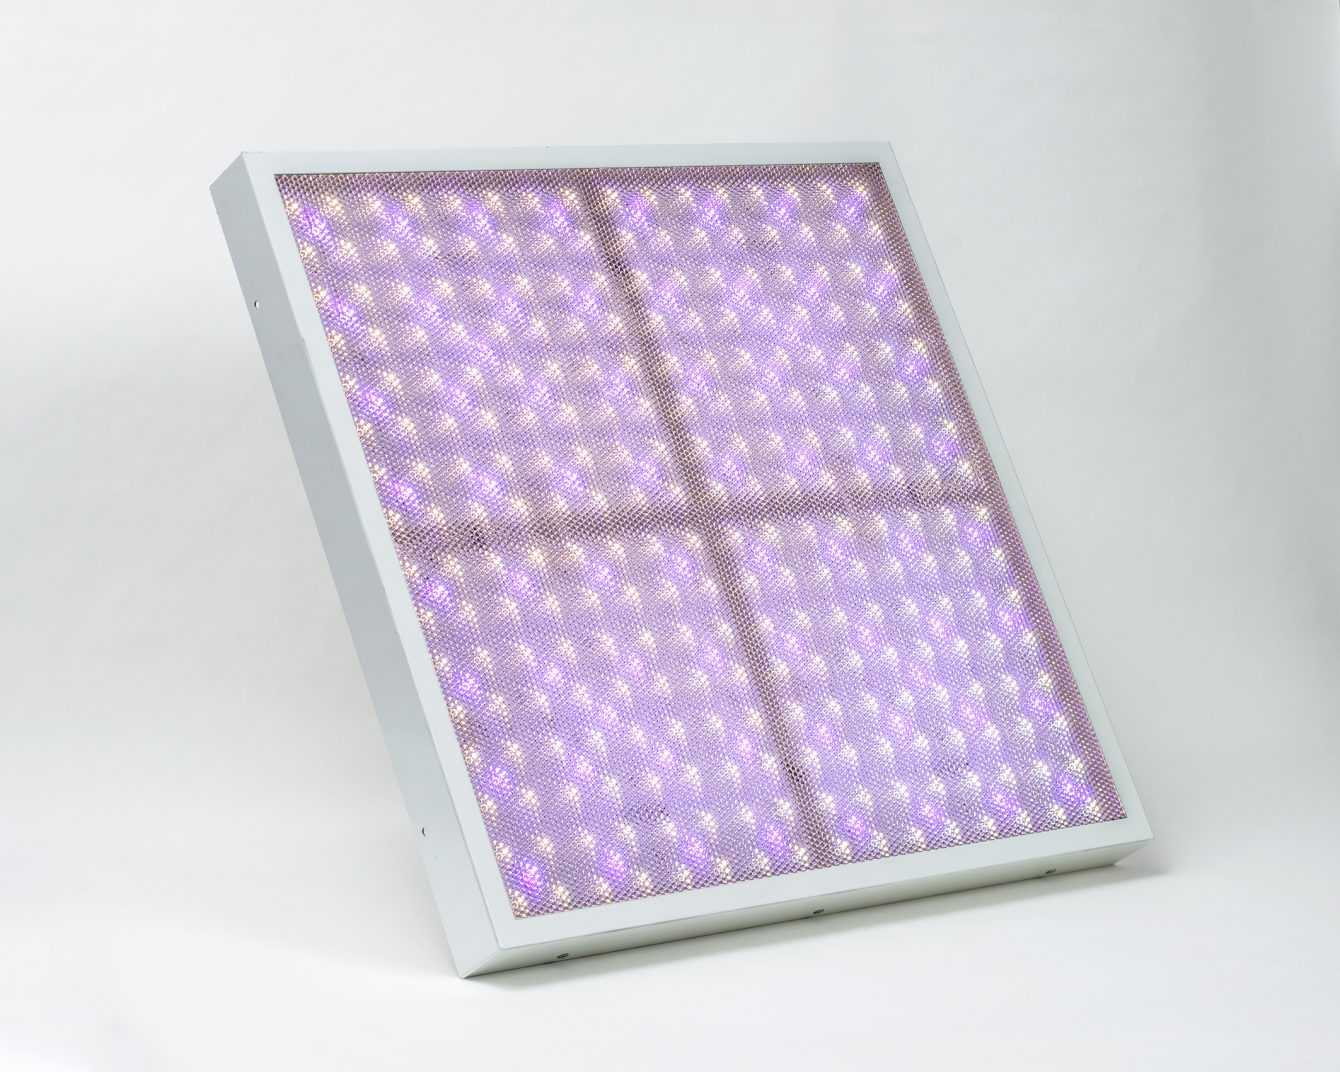 Impera: here is the lamp that inactivates bacteria, viruses and SARS-CoV-2